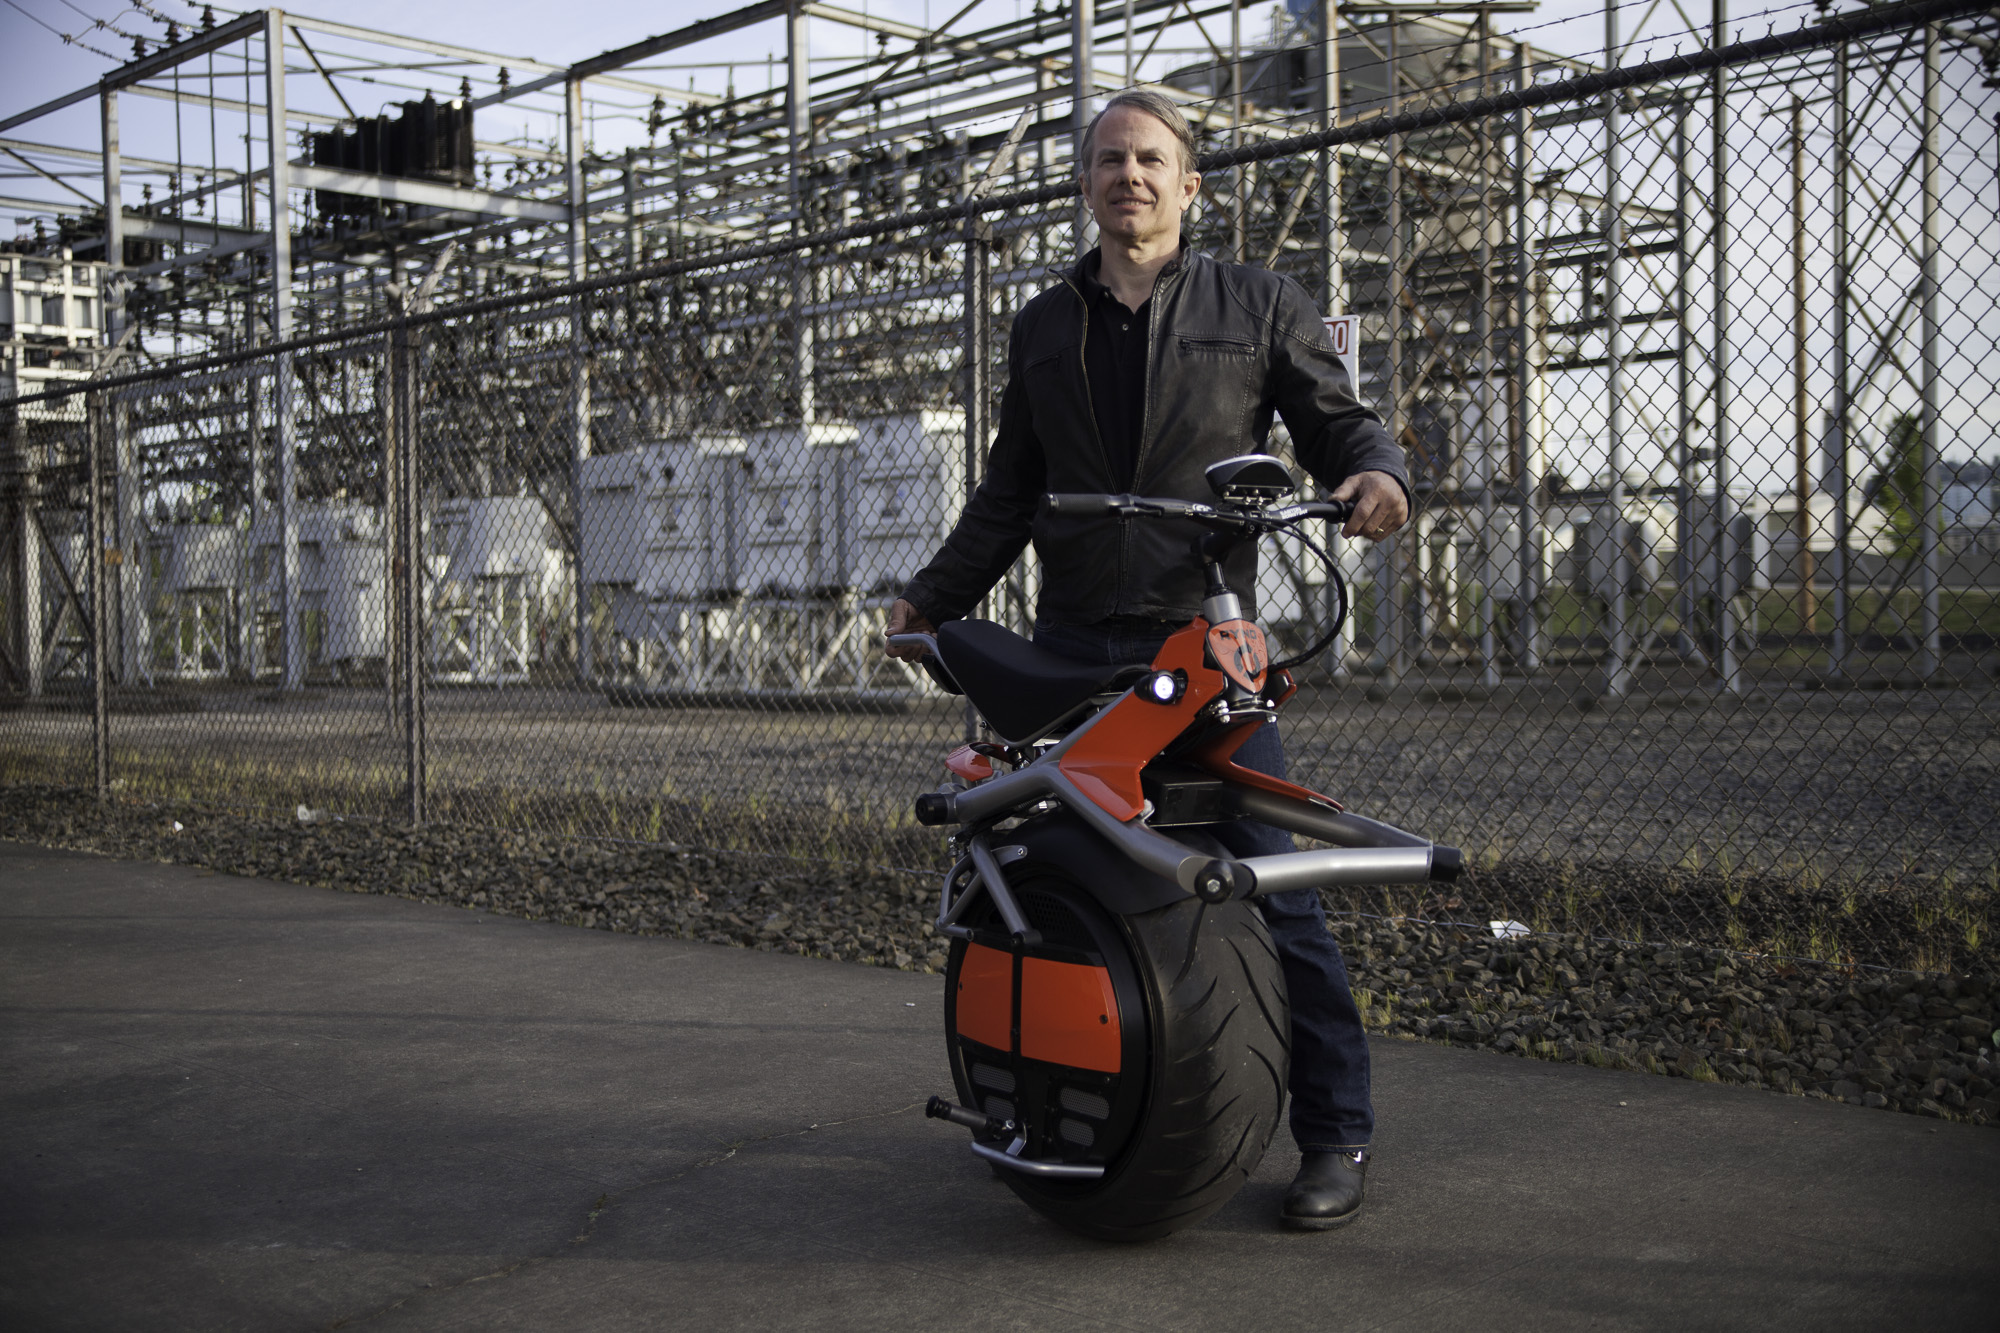 Meet the Ryno You wanted to see a Micro-cycle in action? Here it is. Watch as inventor Chris Hoffmann tests out the first few prototypes of the RYNO, and even takes it out into the streets and sidewalks for field testing. And remember – this video is just a taste of the RYNO experience. To […]